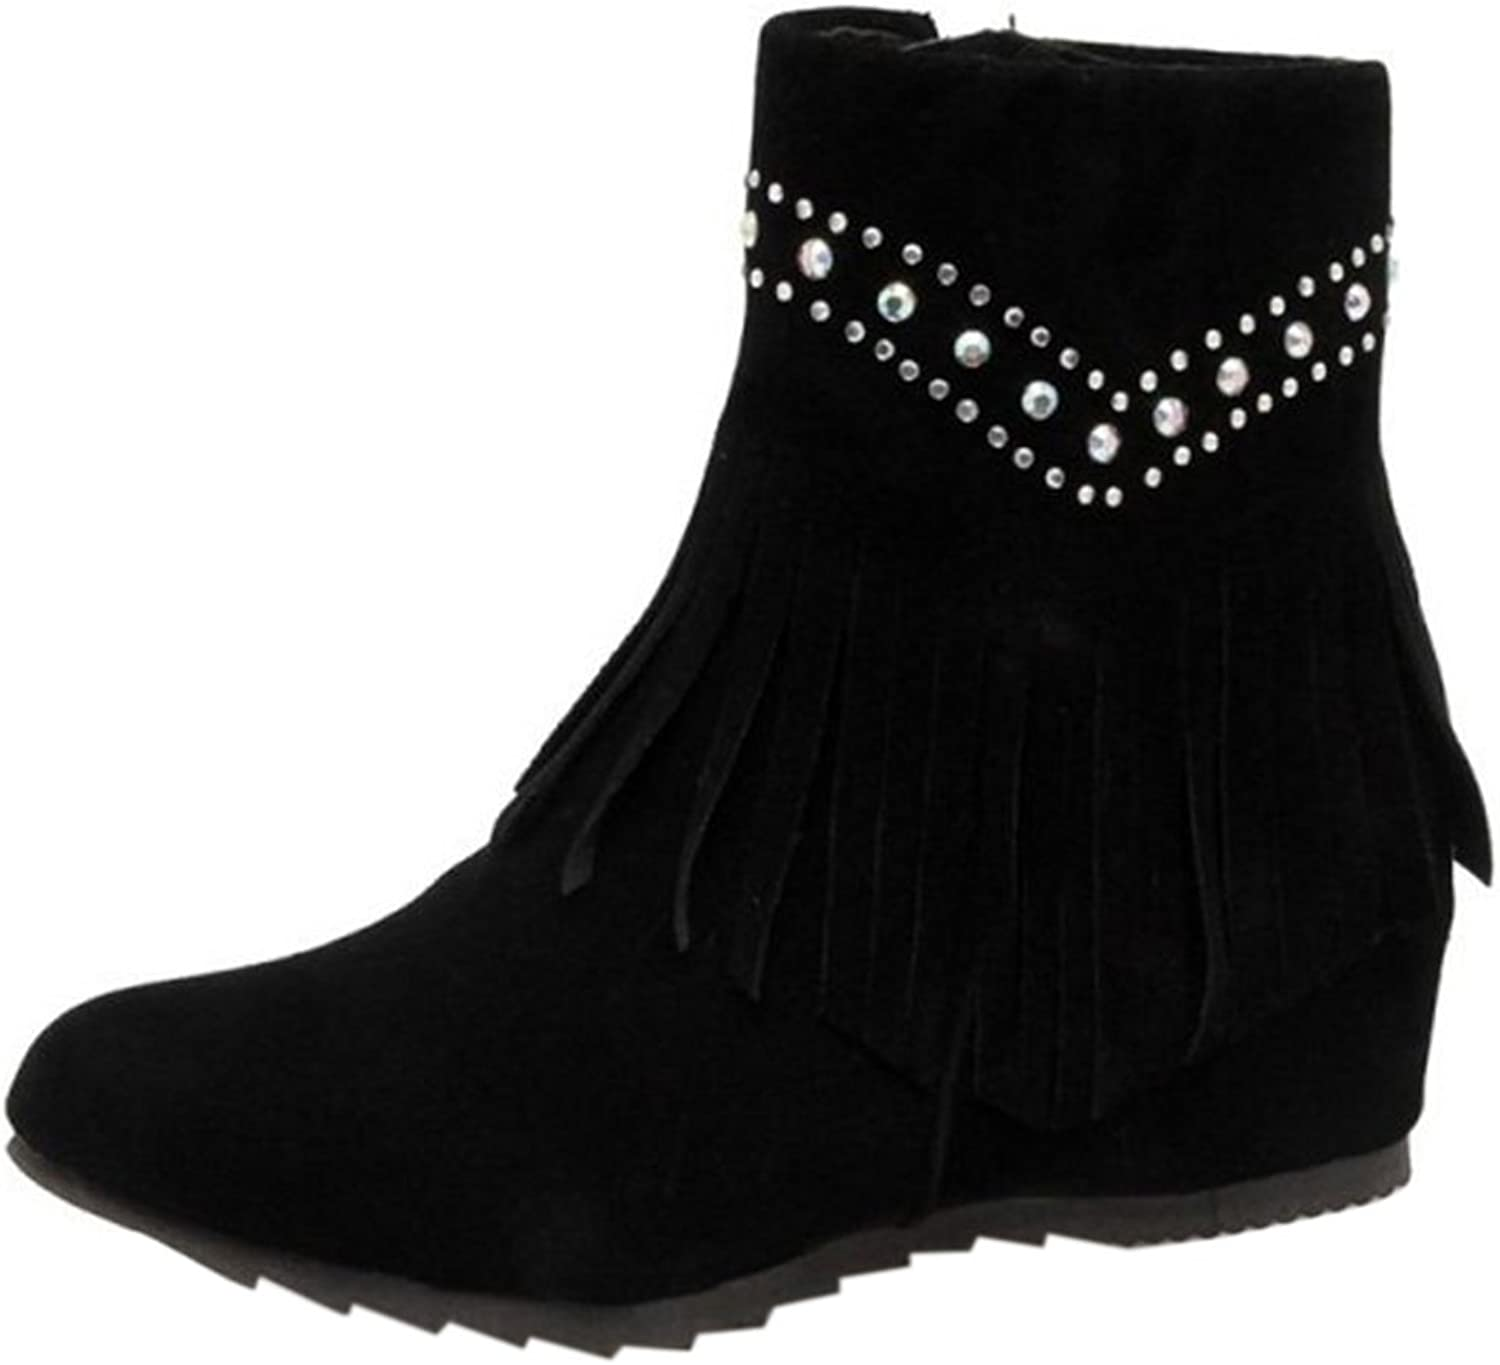 CuteFlats Women Ankle Boots with Wedge Heel and Tassels Casual Boots with Large